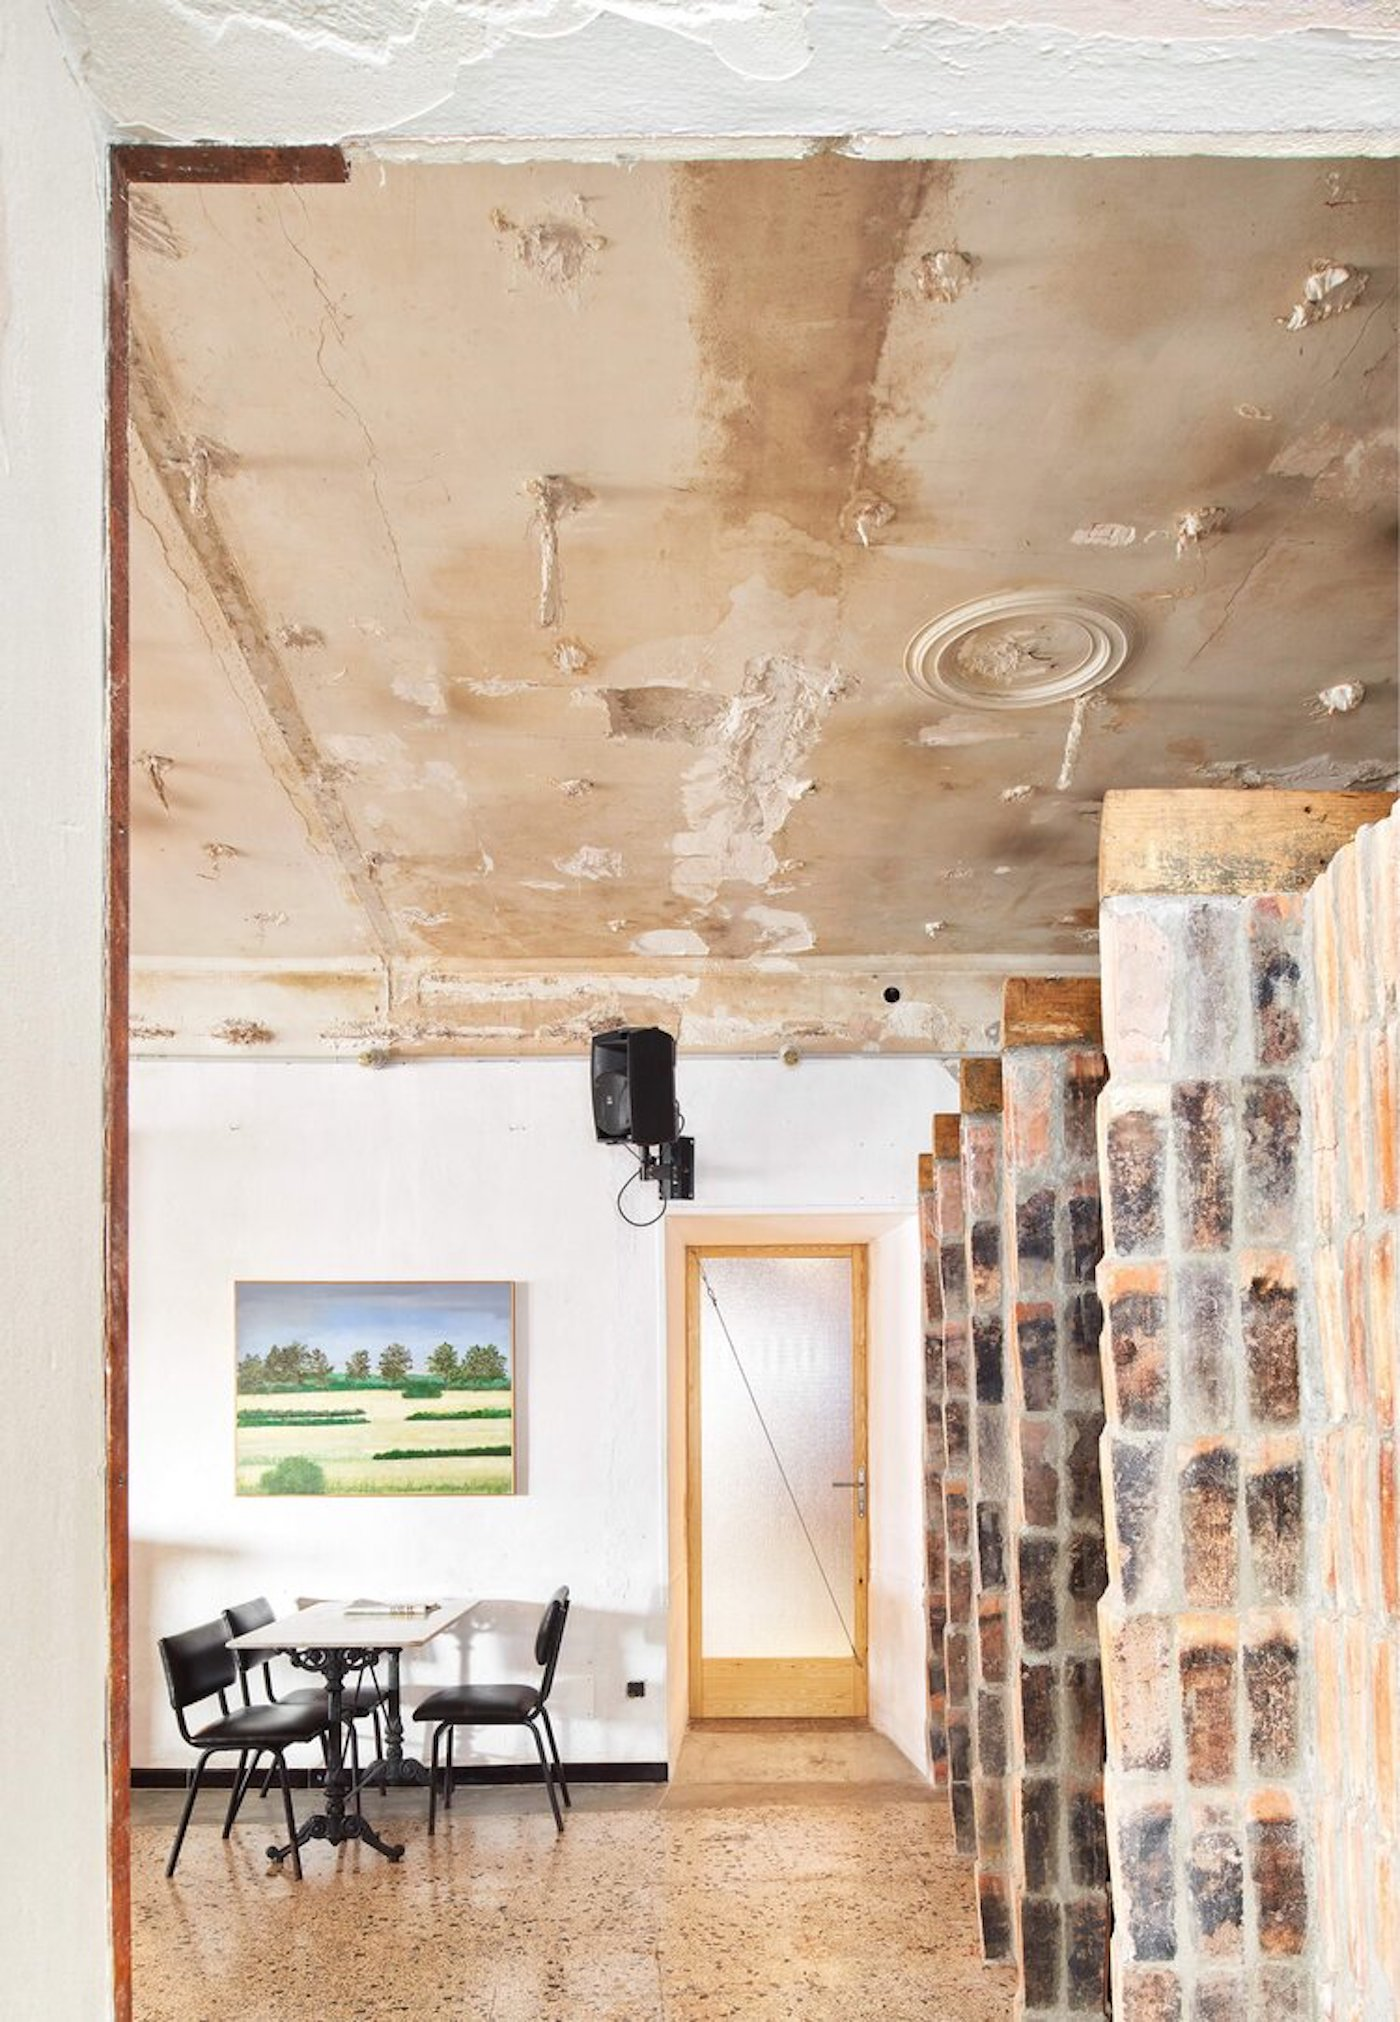 Recycled brick walls in cafe